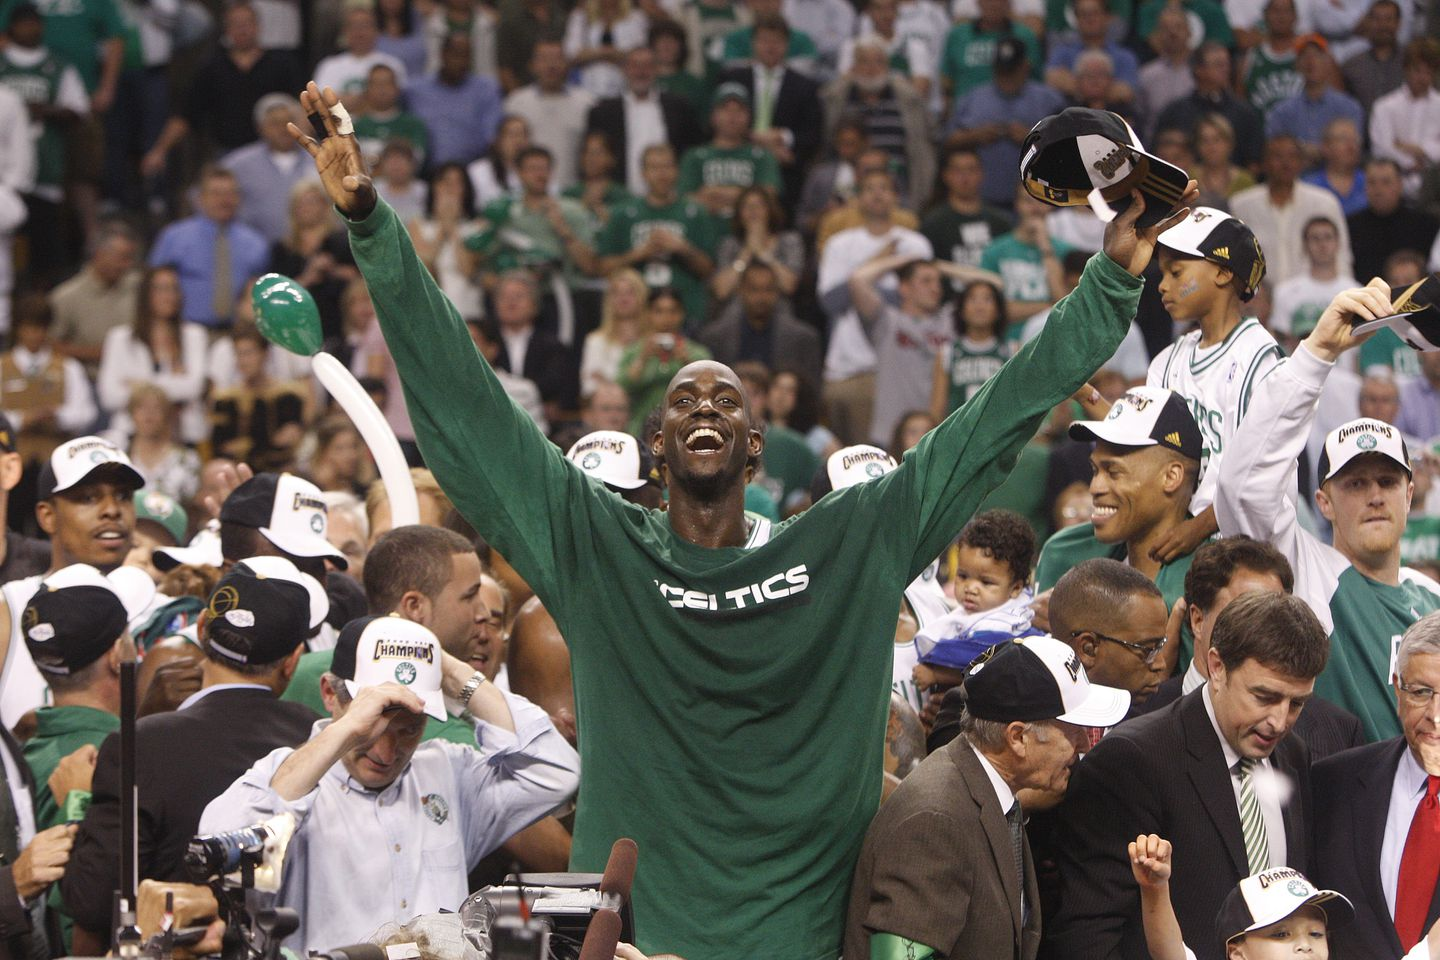 Kevin Garnett has plenty of stories from the NBA. Now it's time to ...